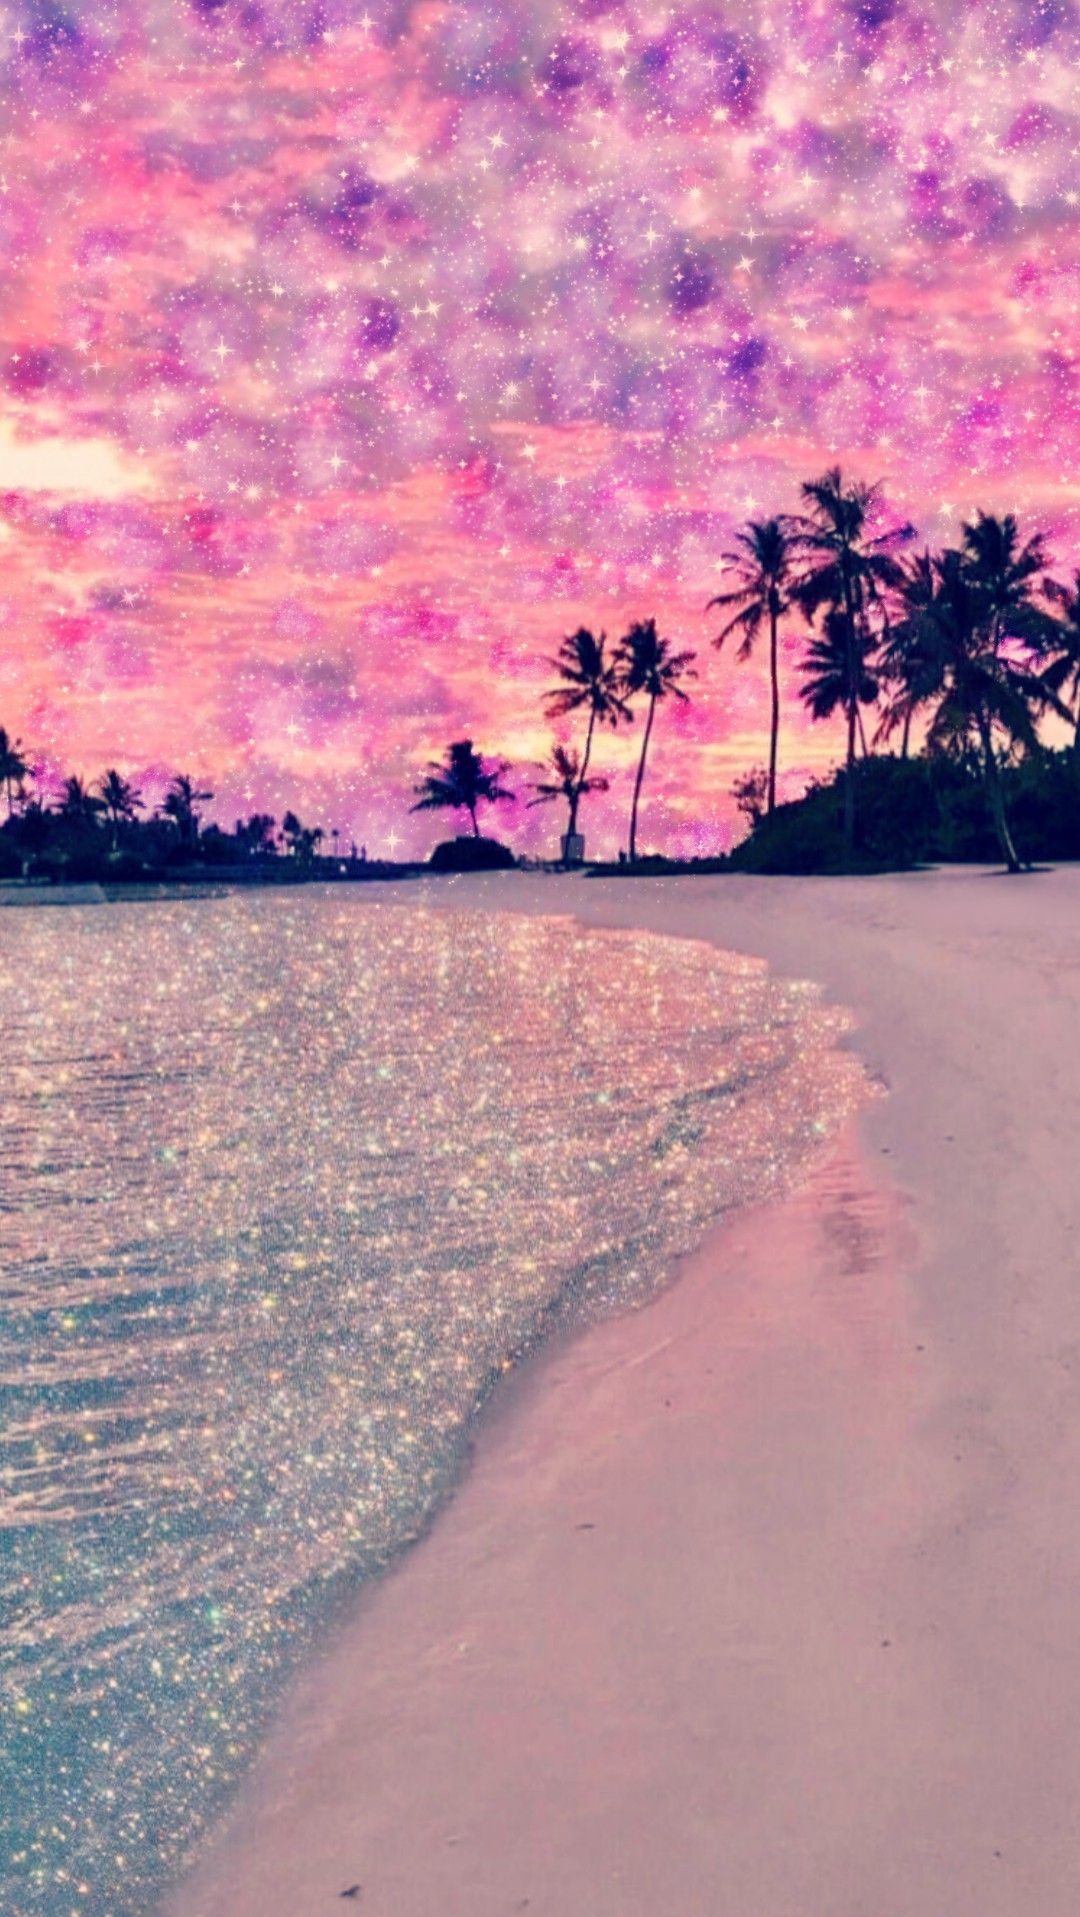 Galaxy Beach Wallpapers - Top Free ...